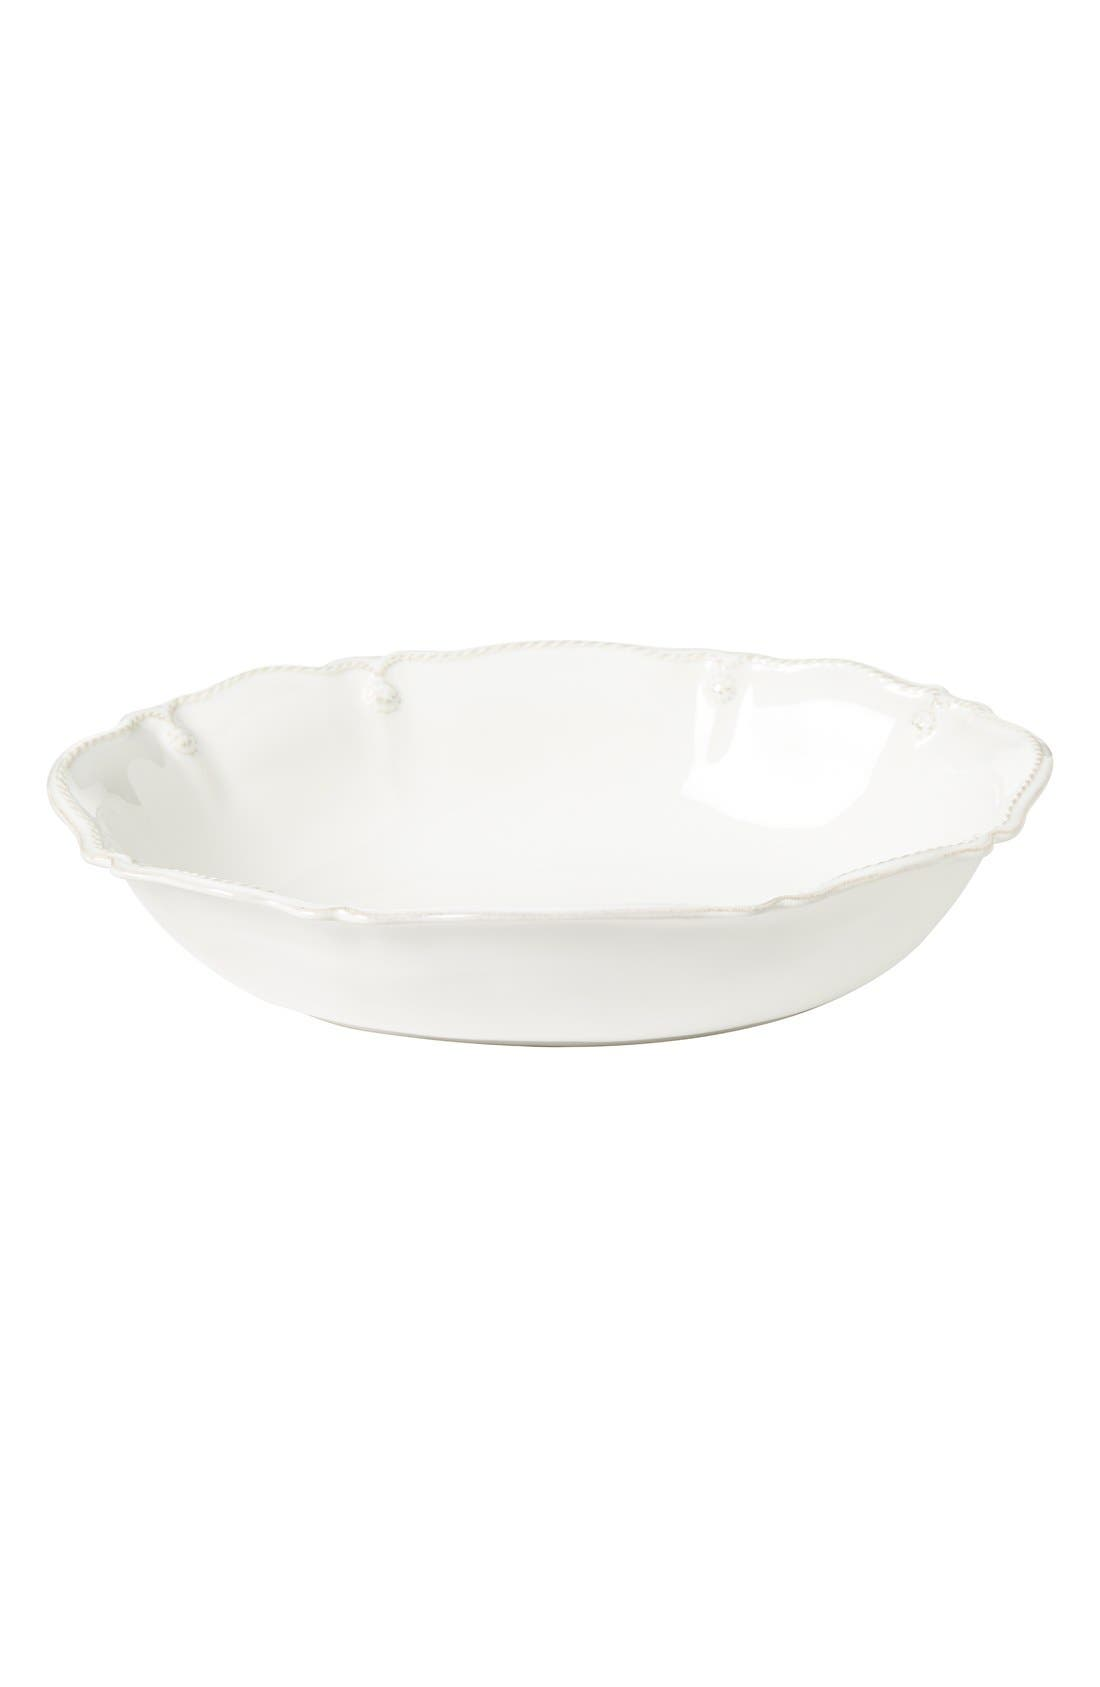 'Berry and Thread' Oval Serving Bowl,                         Main,                         color, Whitewash